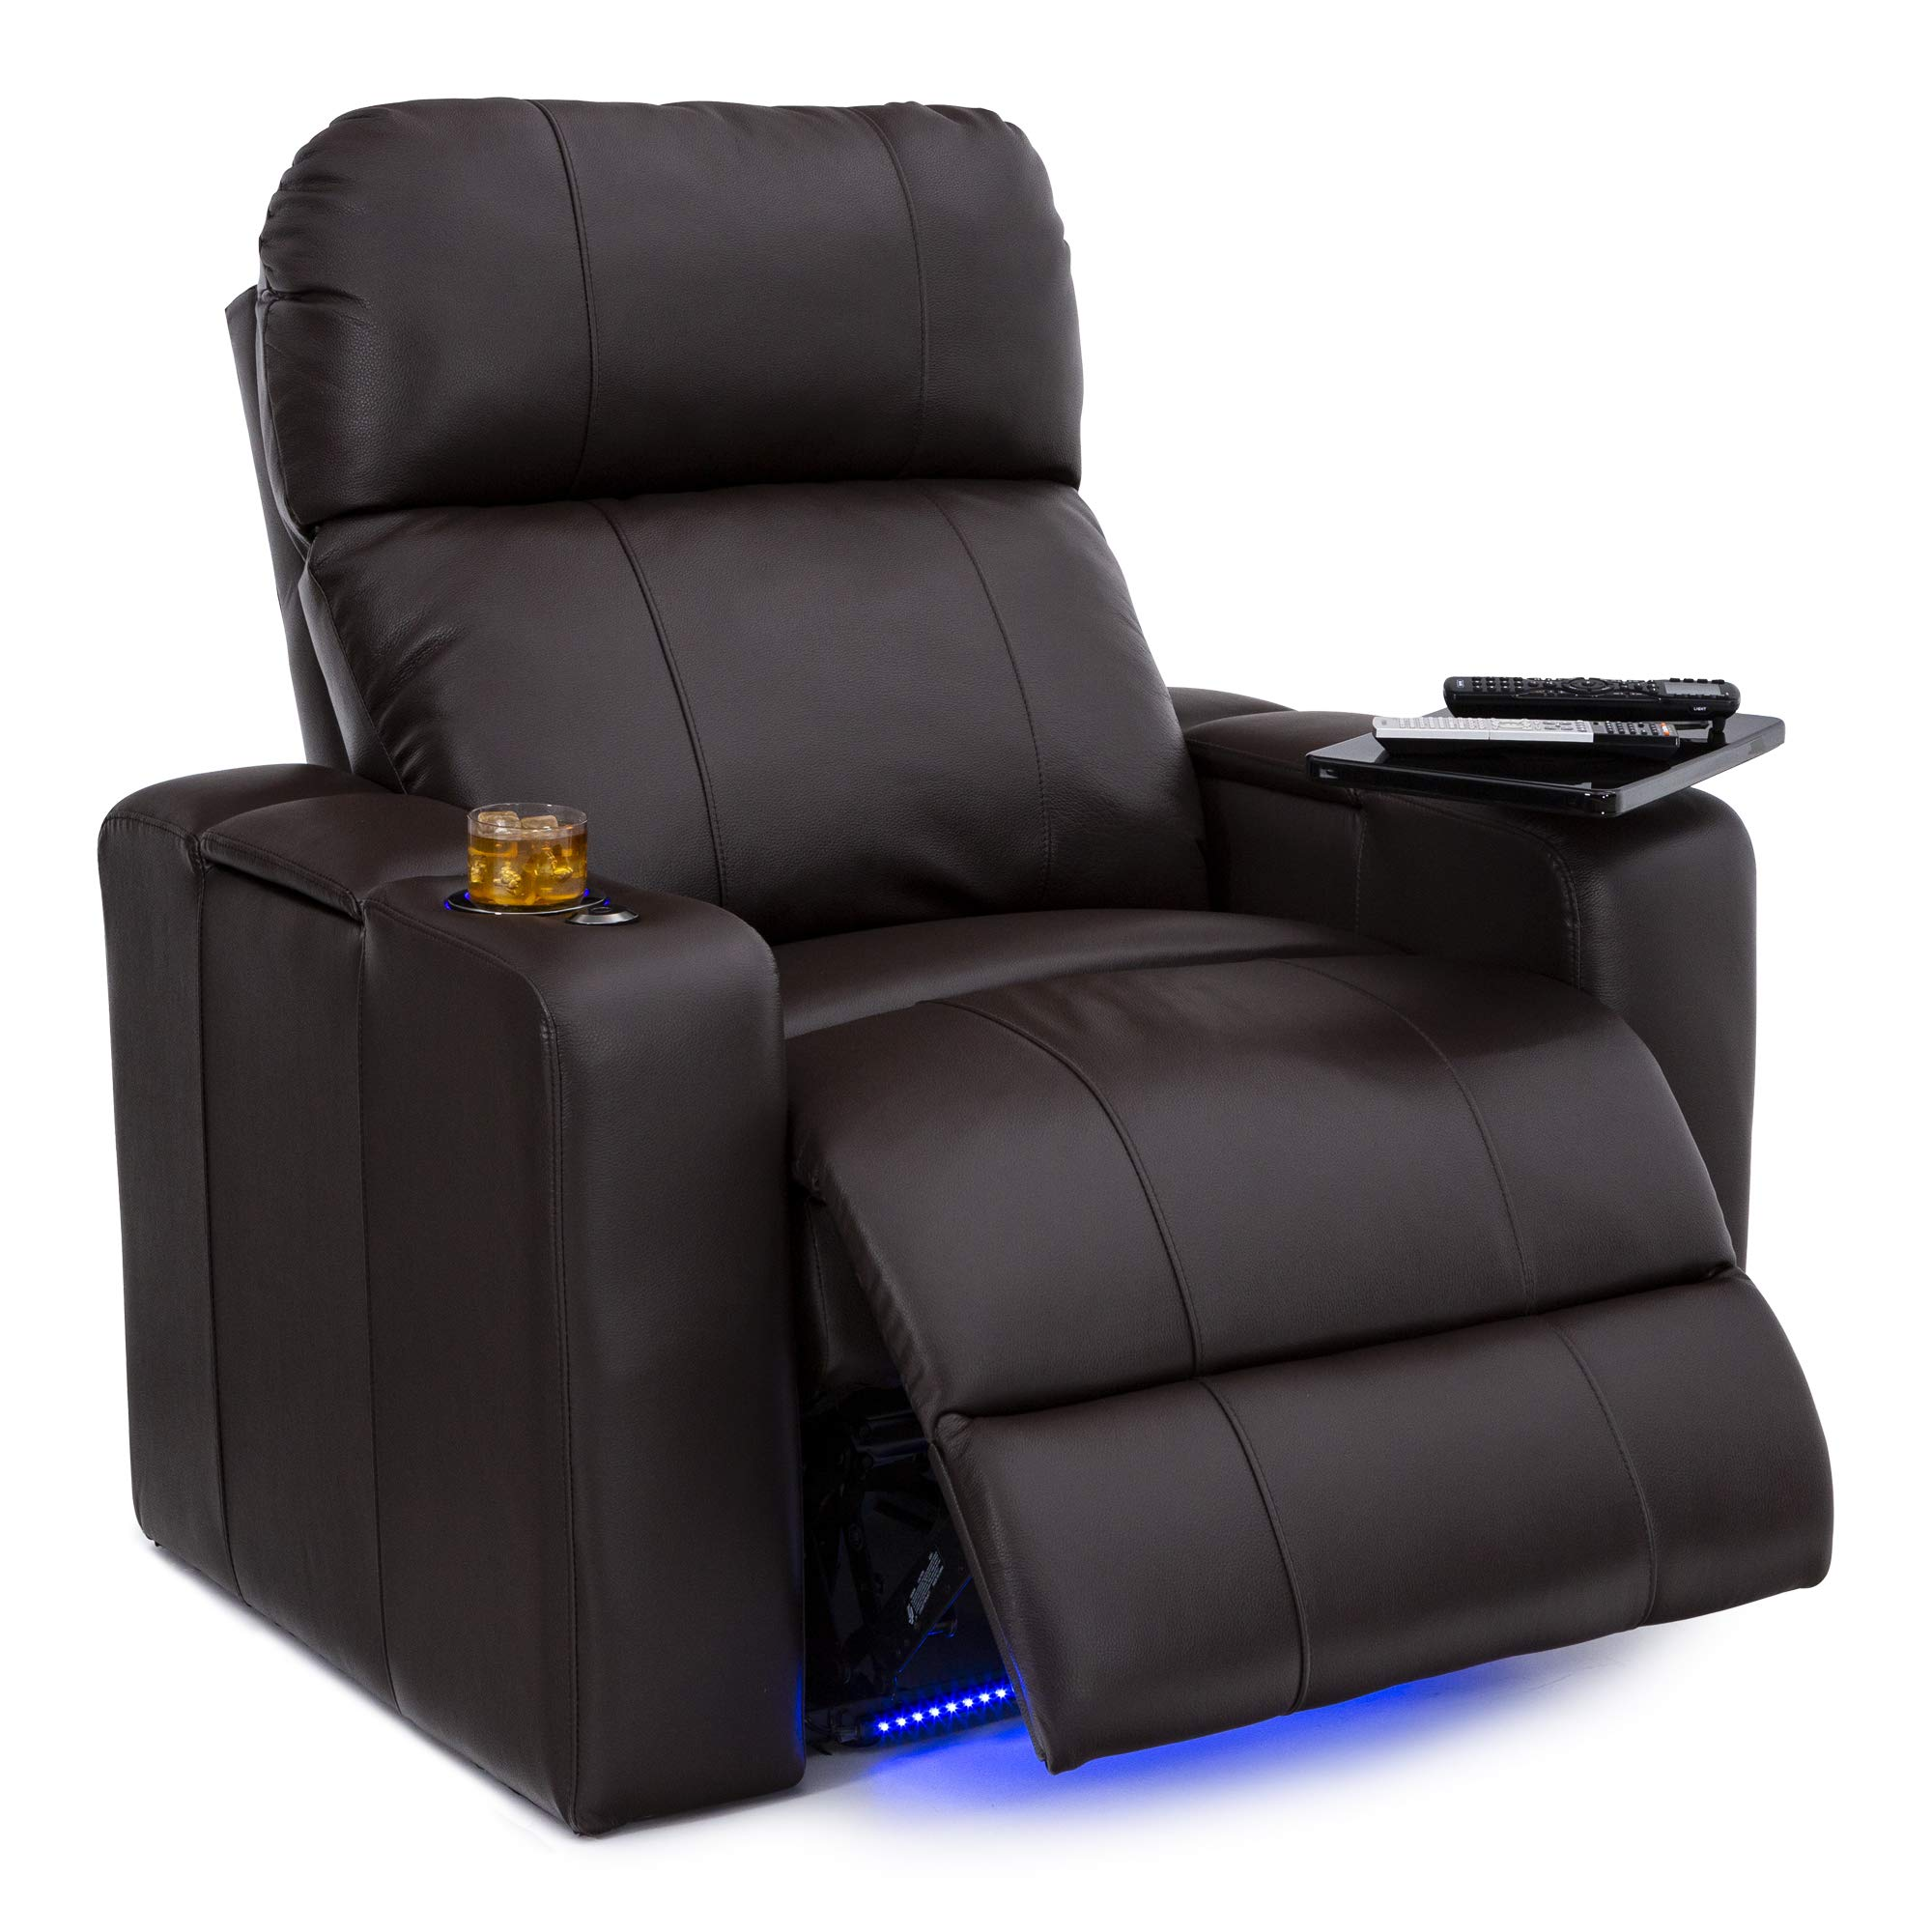 Seatcraft Julius Big & Tall 400 lbs Capacity Home Theater Seating Leather Power Recline with Adjustable Powered Headrest, USB Charging Port, and Lighted Cup Holders and Base, Brown by Seatcraft